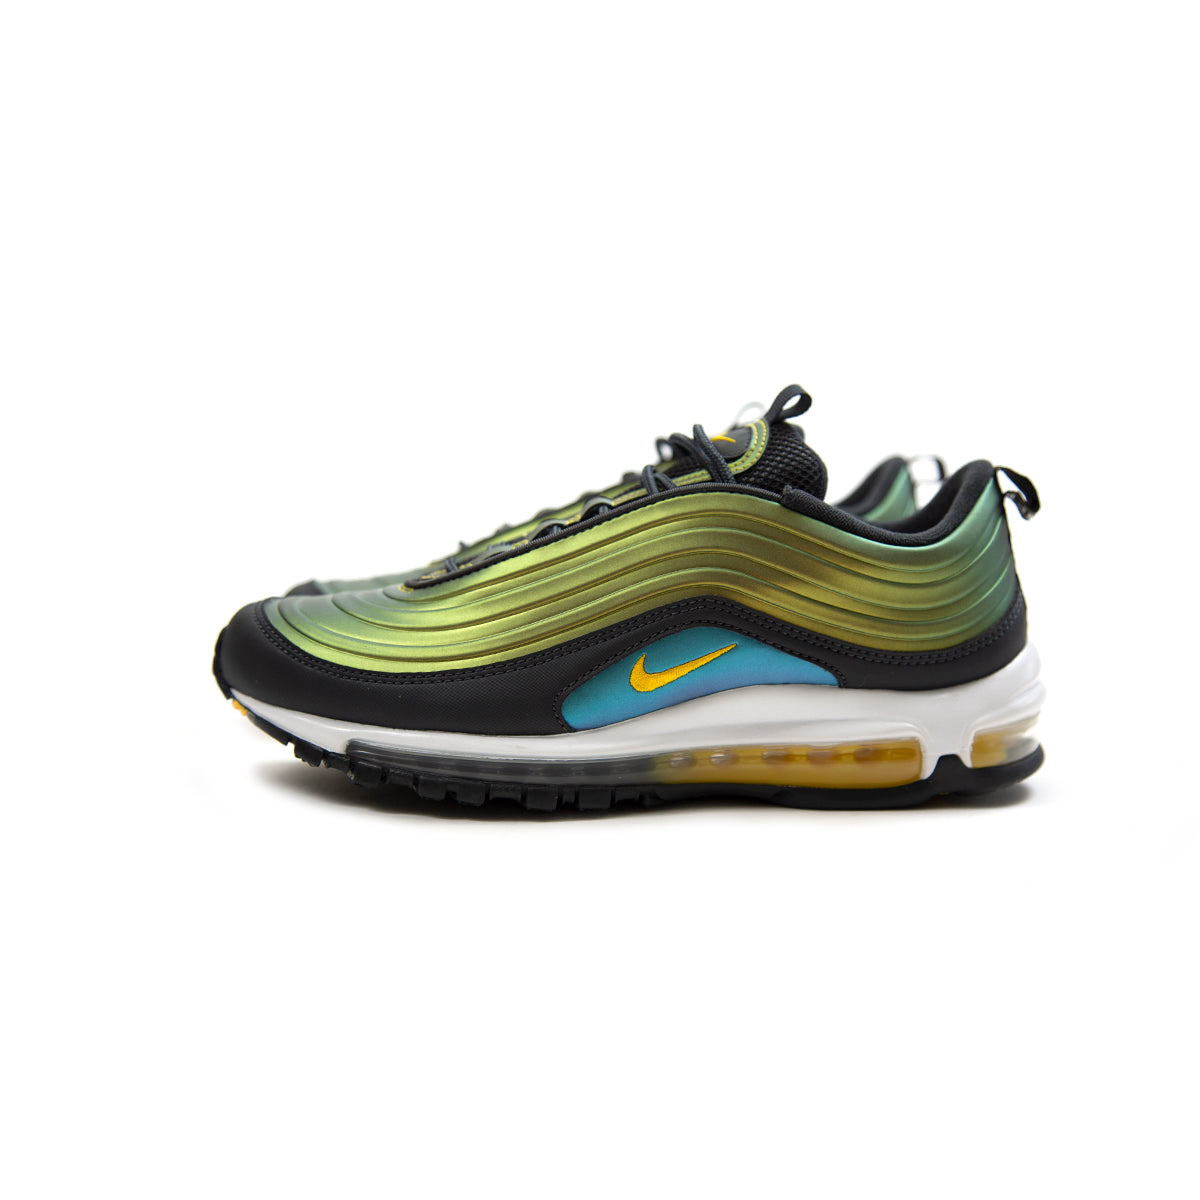 Nike Air Max 97 Undefeated Release Date. Nike SNEAKRS SG